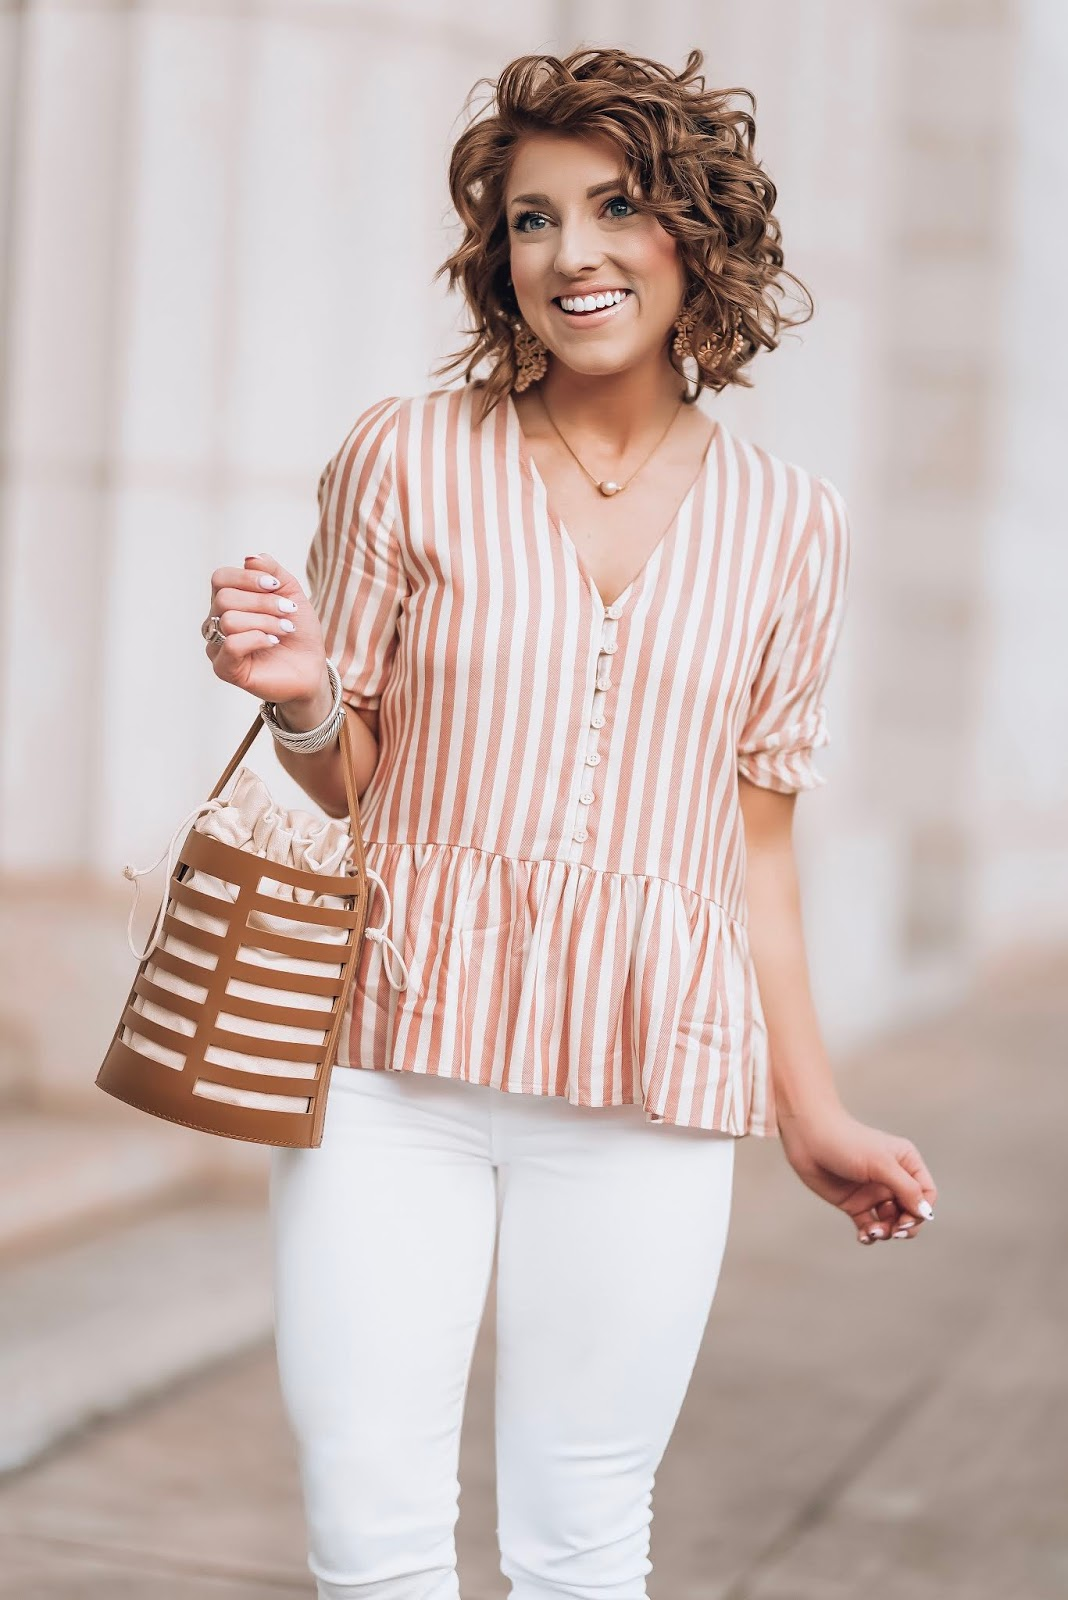 Stripes for Spring: Madewell Stripe Peplum Top + white jeans & leopard sandals - Something Delightful Blog #springstyle #springfashion #springlooks